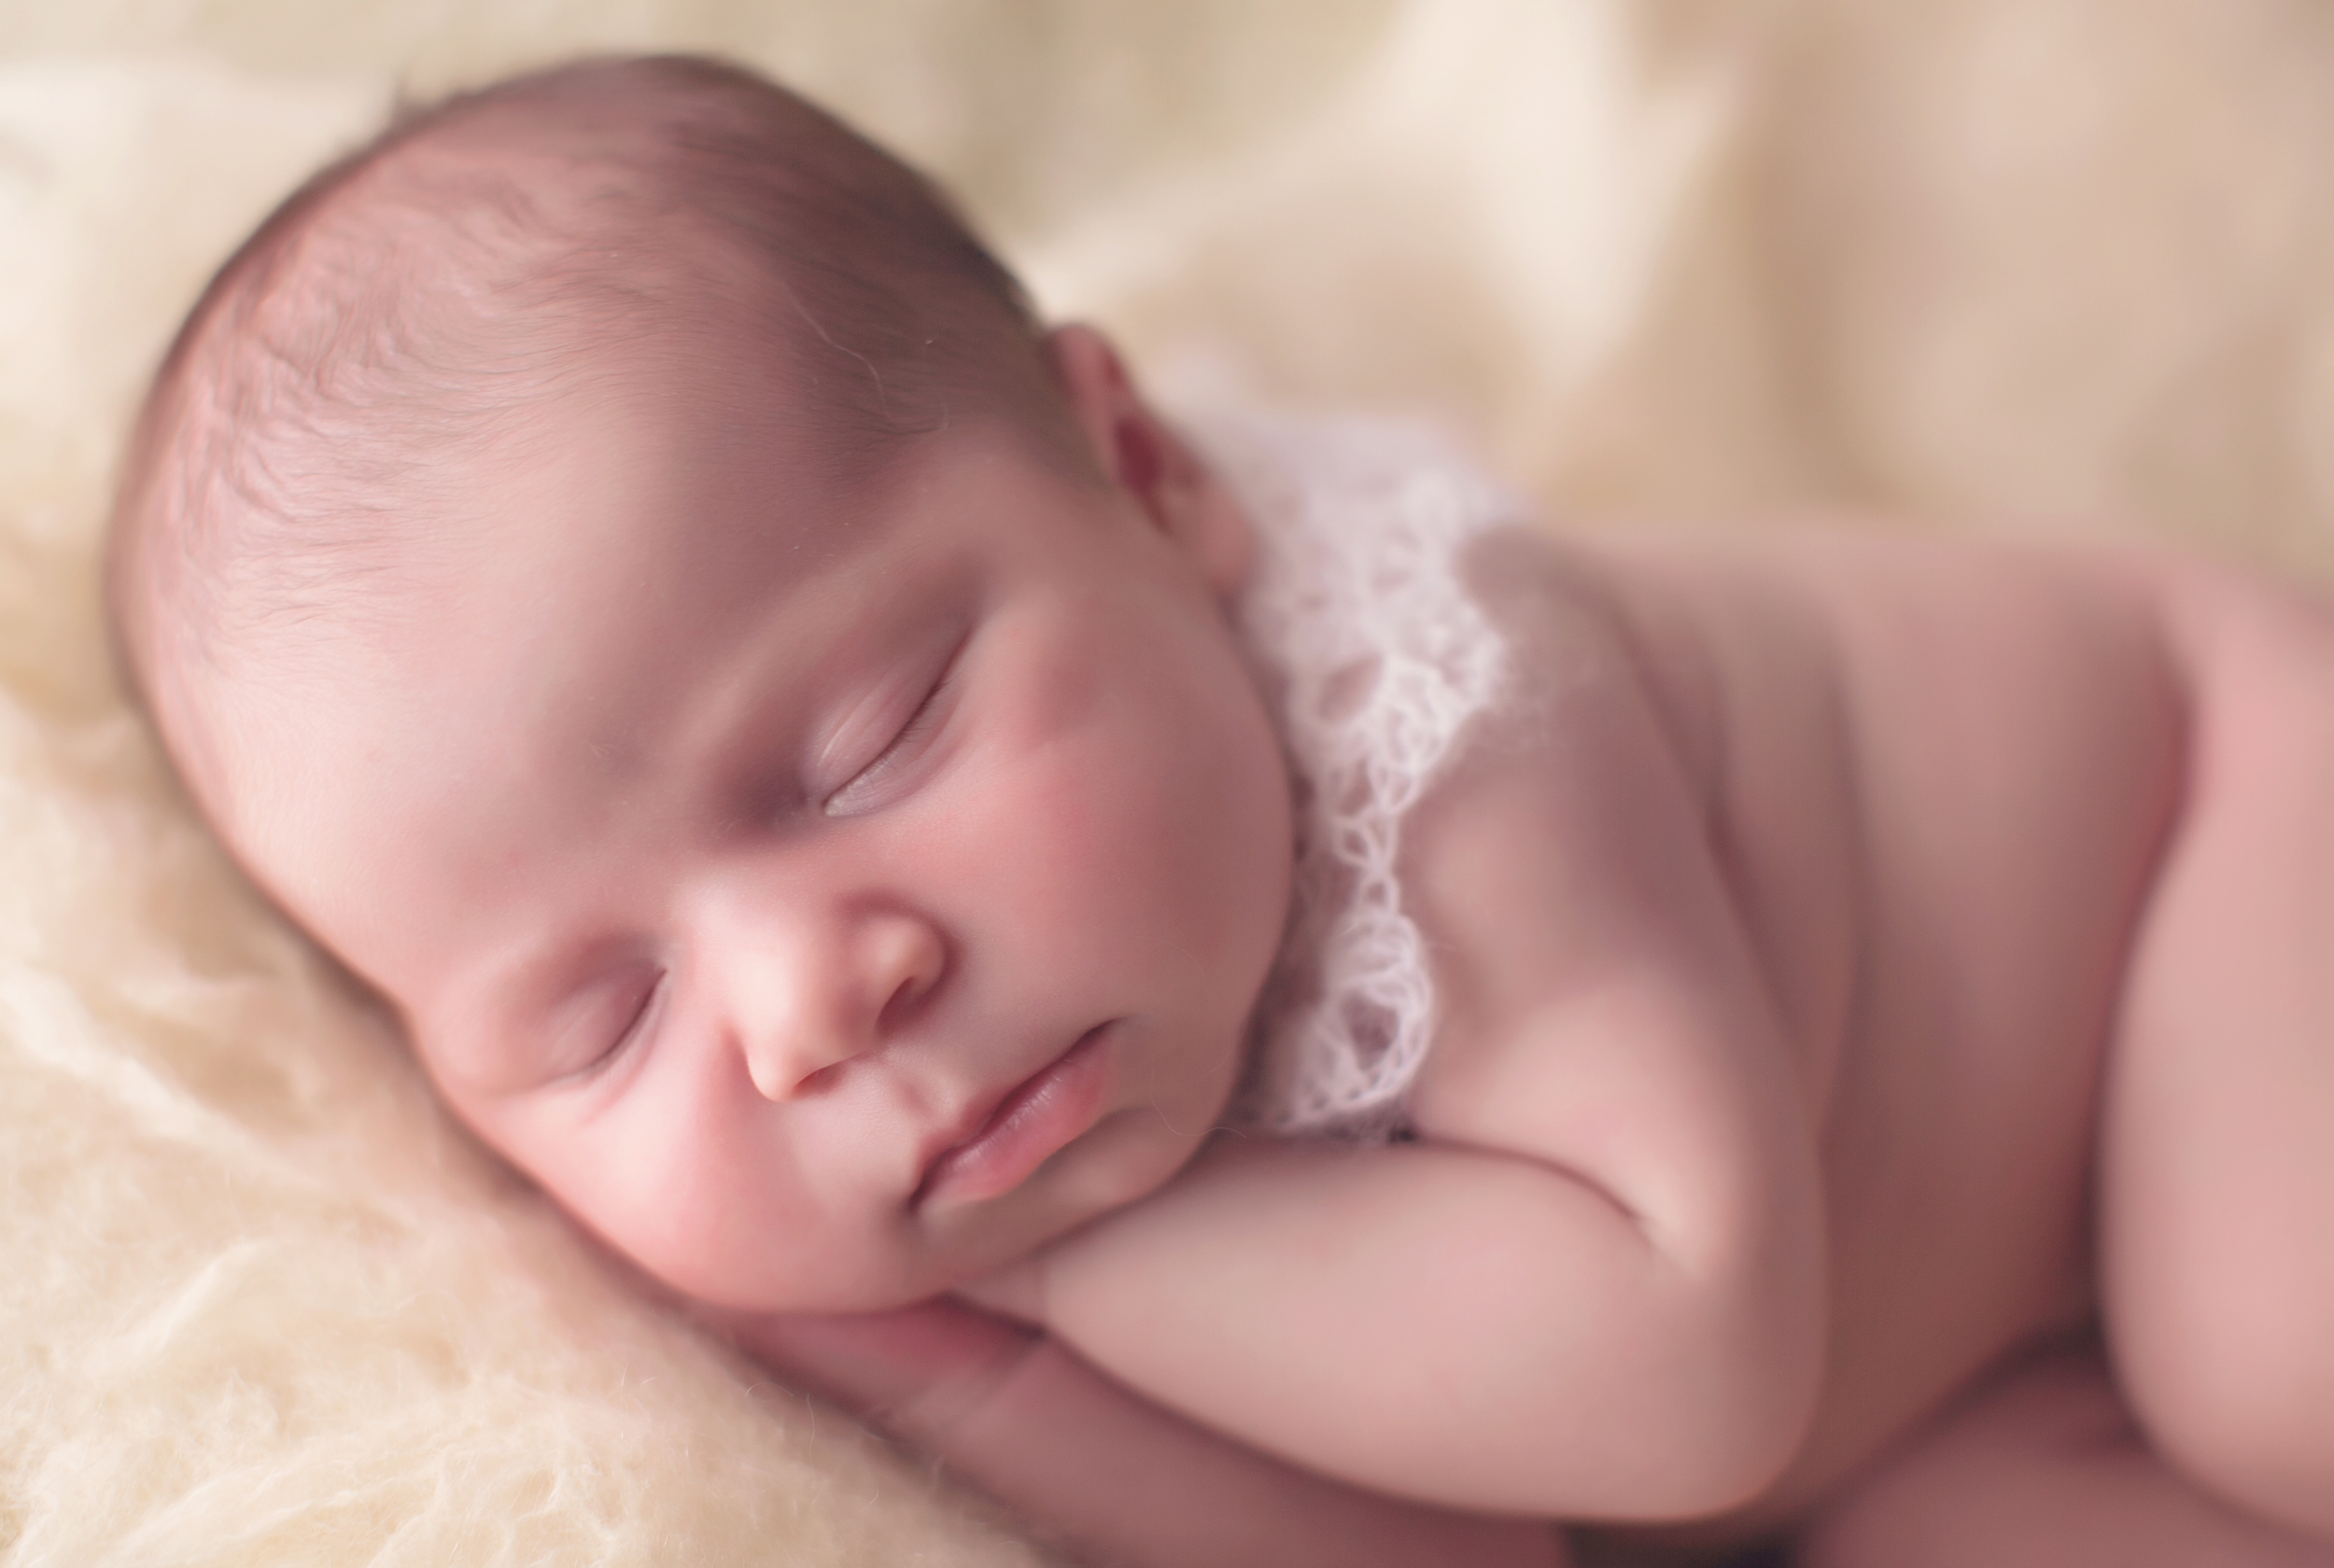 Los-Angeles-Newborn-Baby-Portrait-Studio-Maternity-Photos-V-Kendal-Photography185.JPG